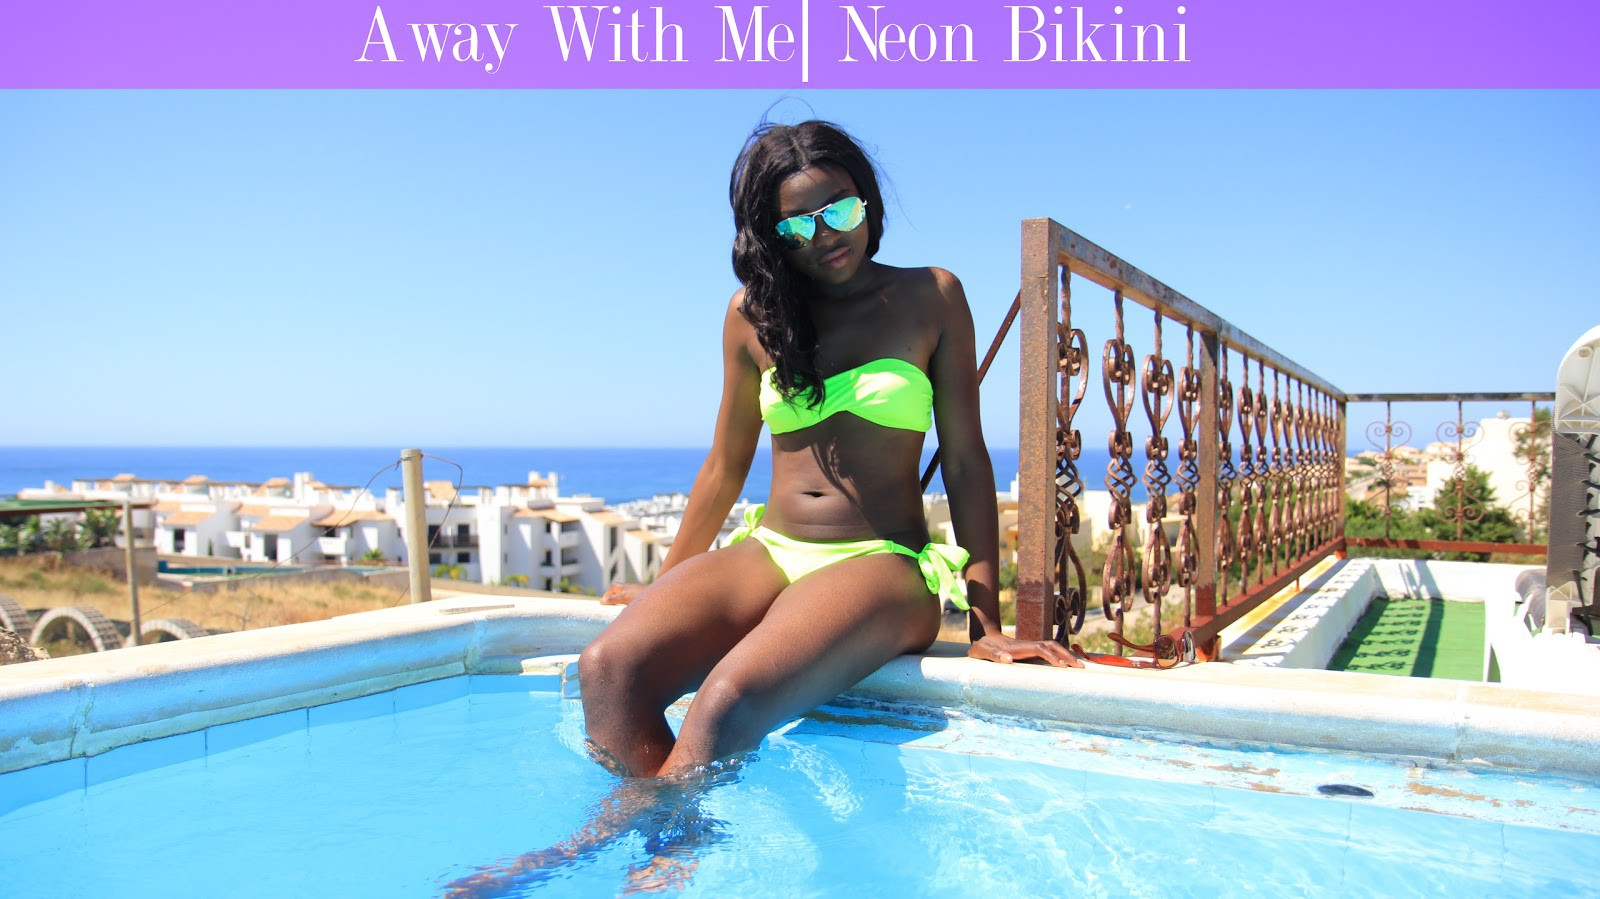 Away With Me| Neon Bikini